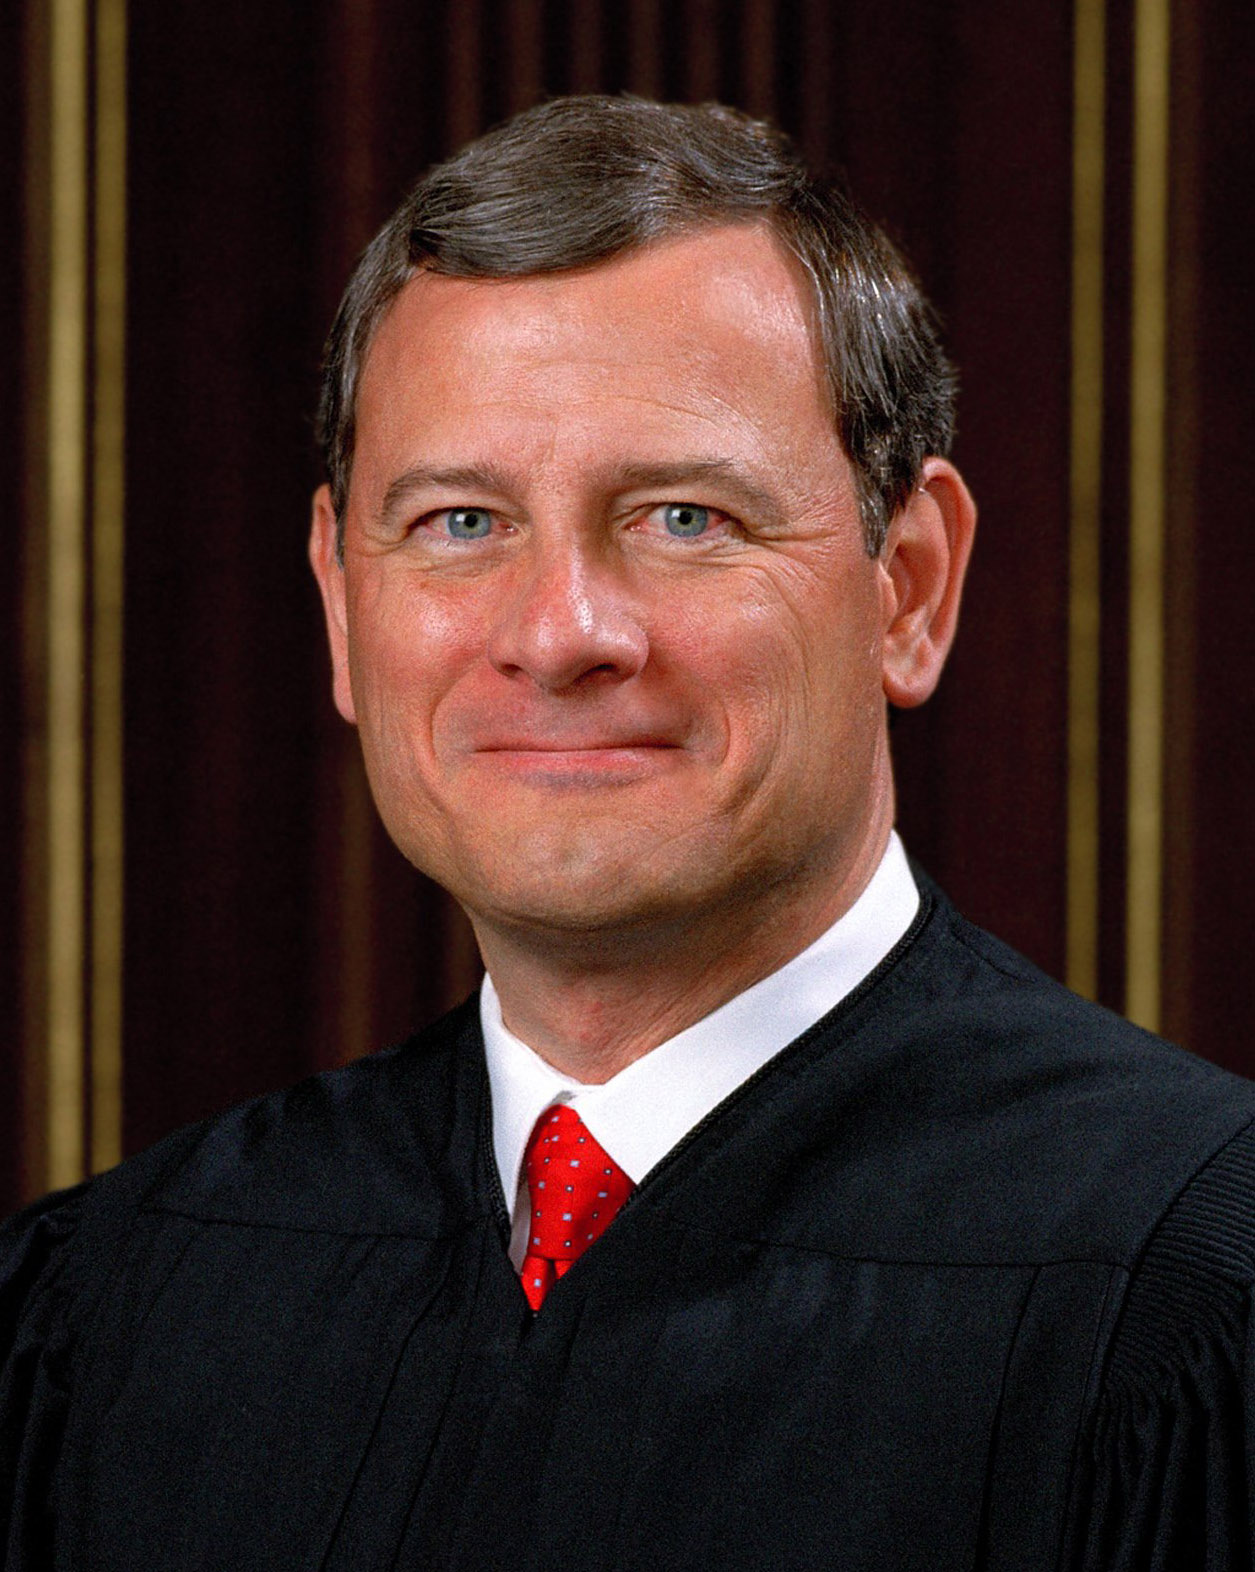 John Roberts - Chief Justice of the United States Supreme Court